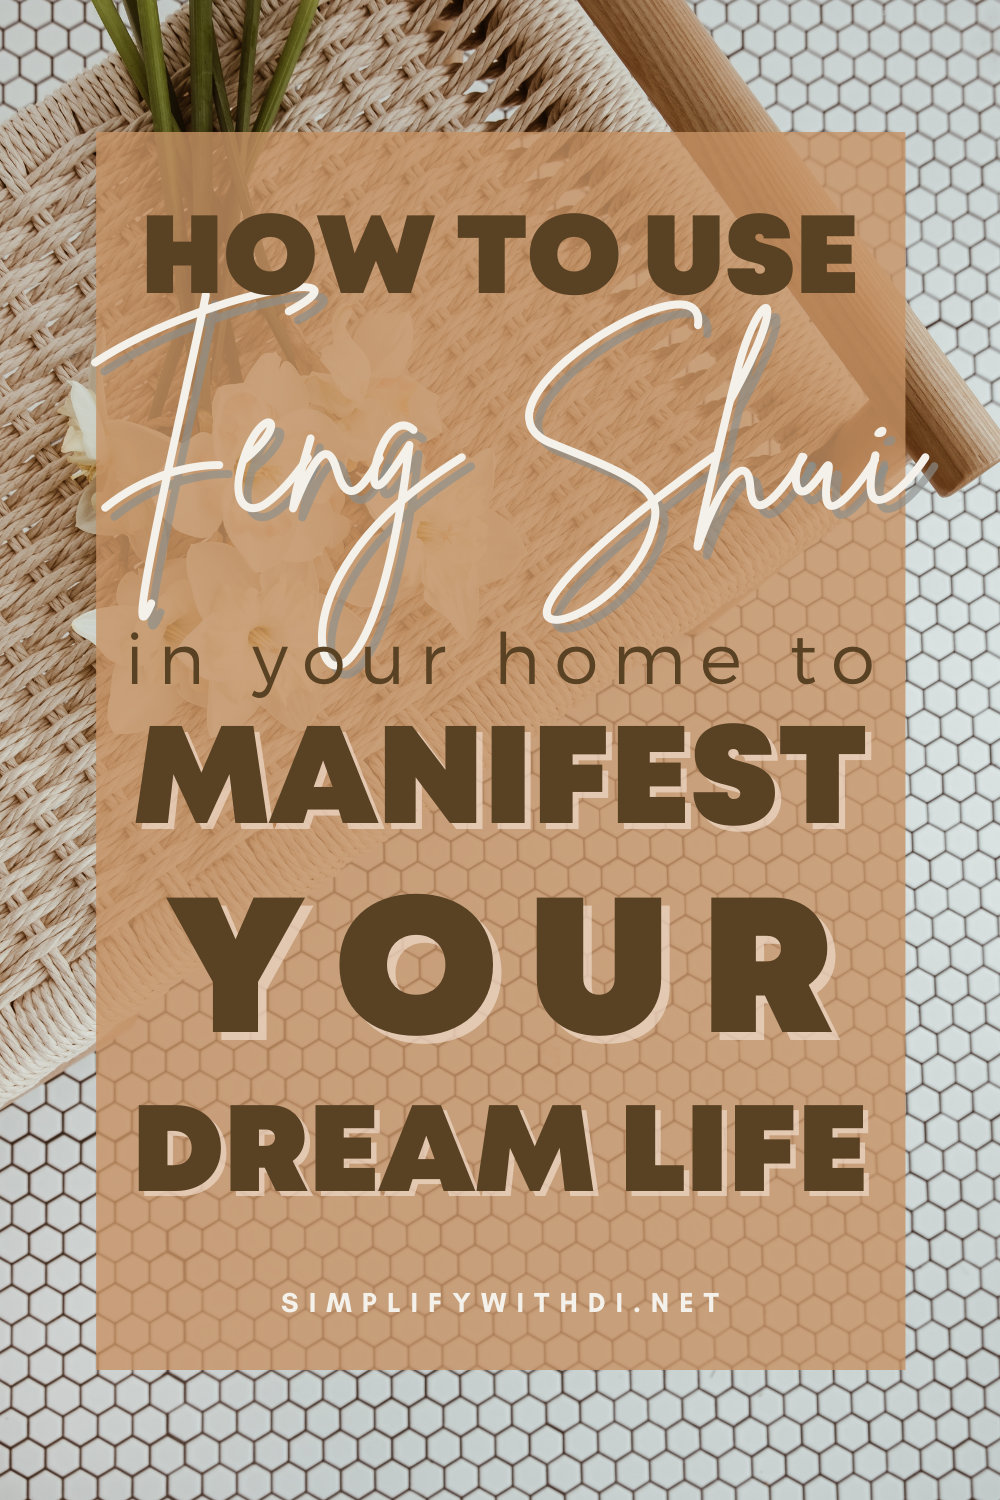 How to Use Feng Shui in Your Home to Manifest Your Dream Life - Simplify With Di